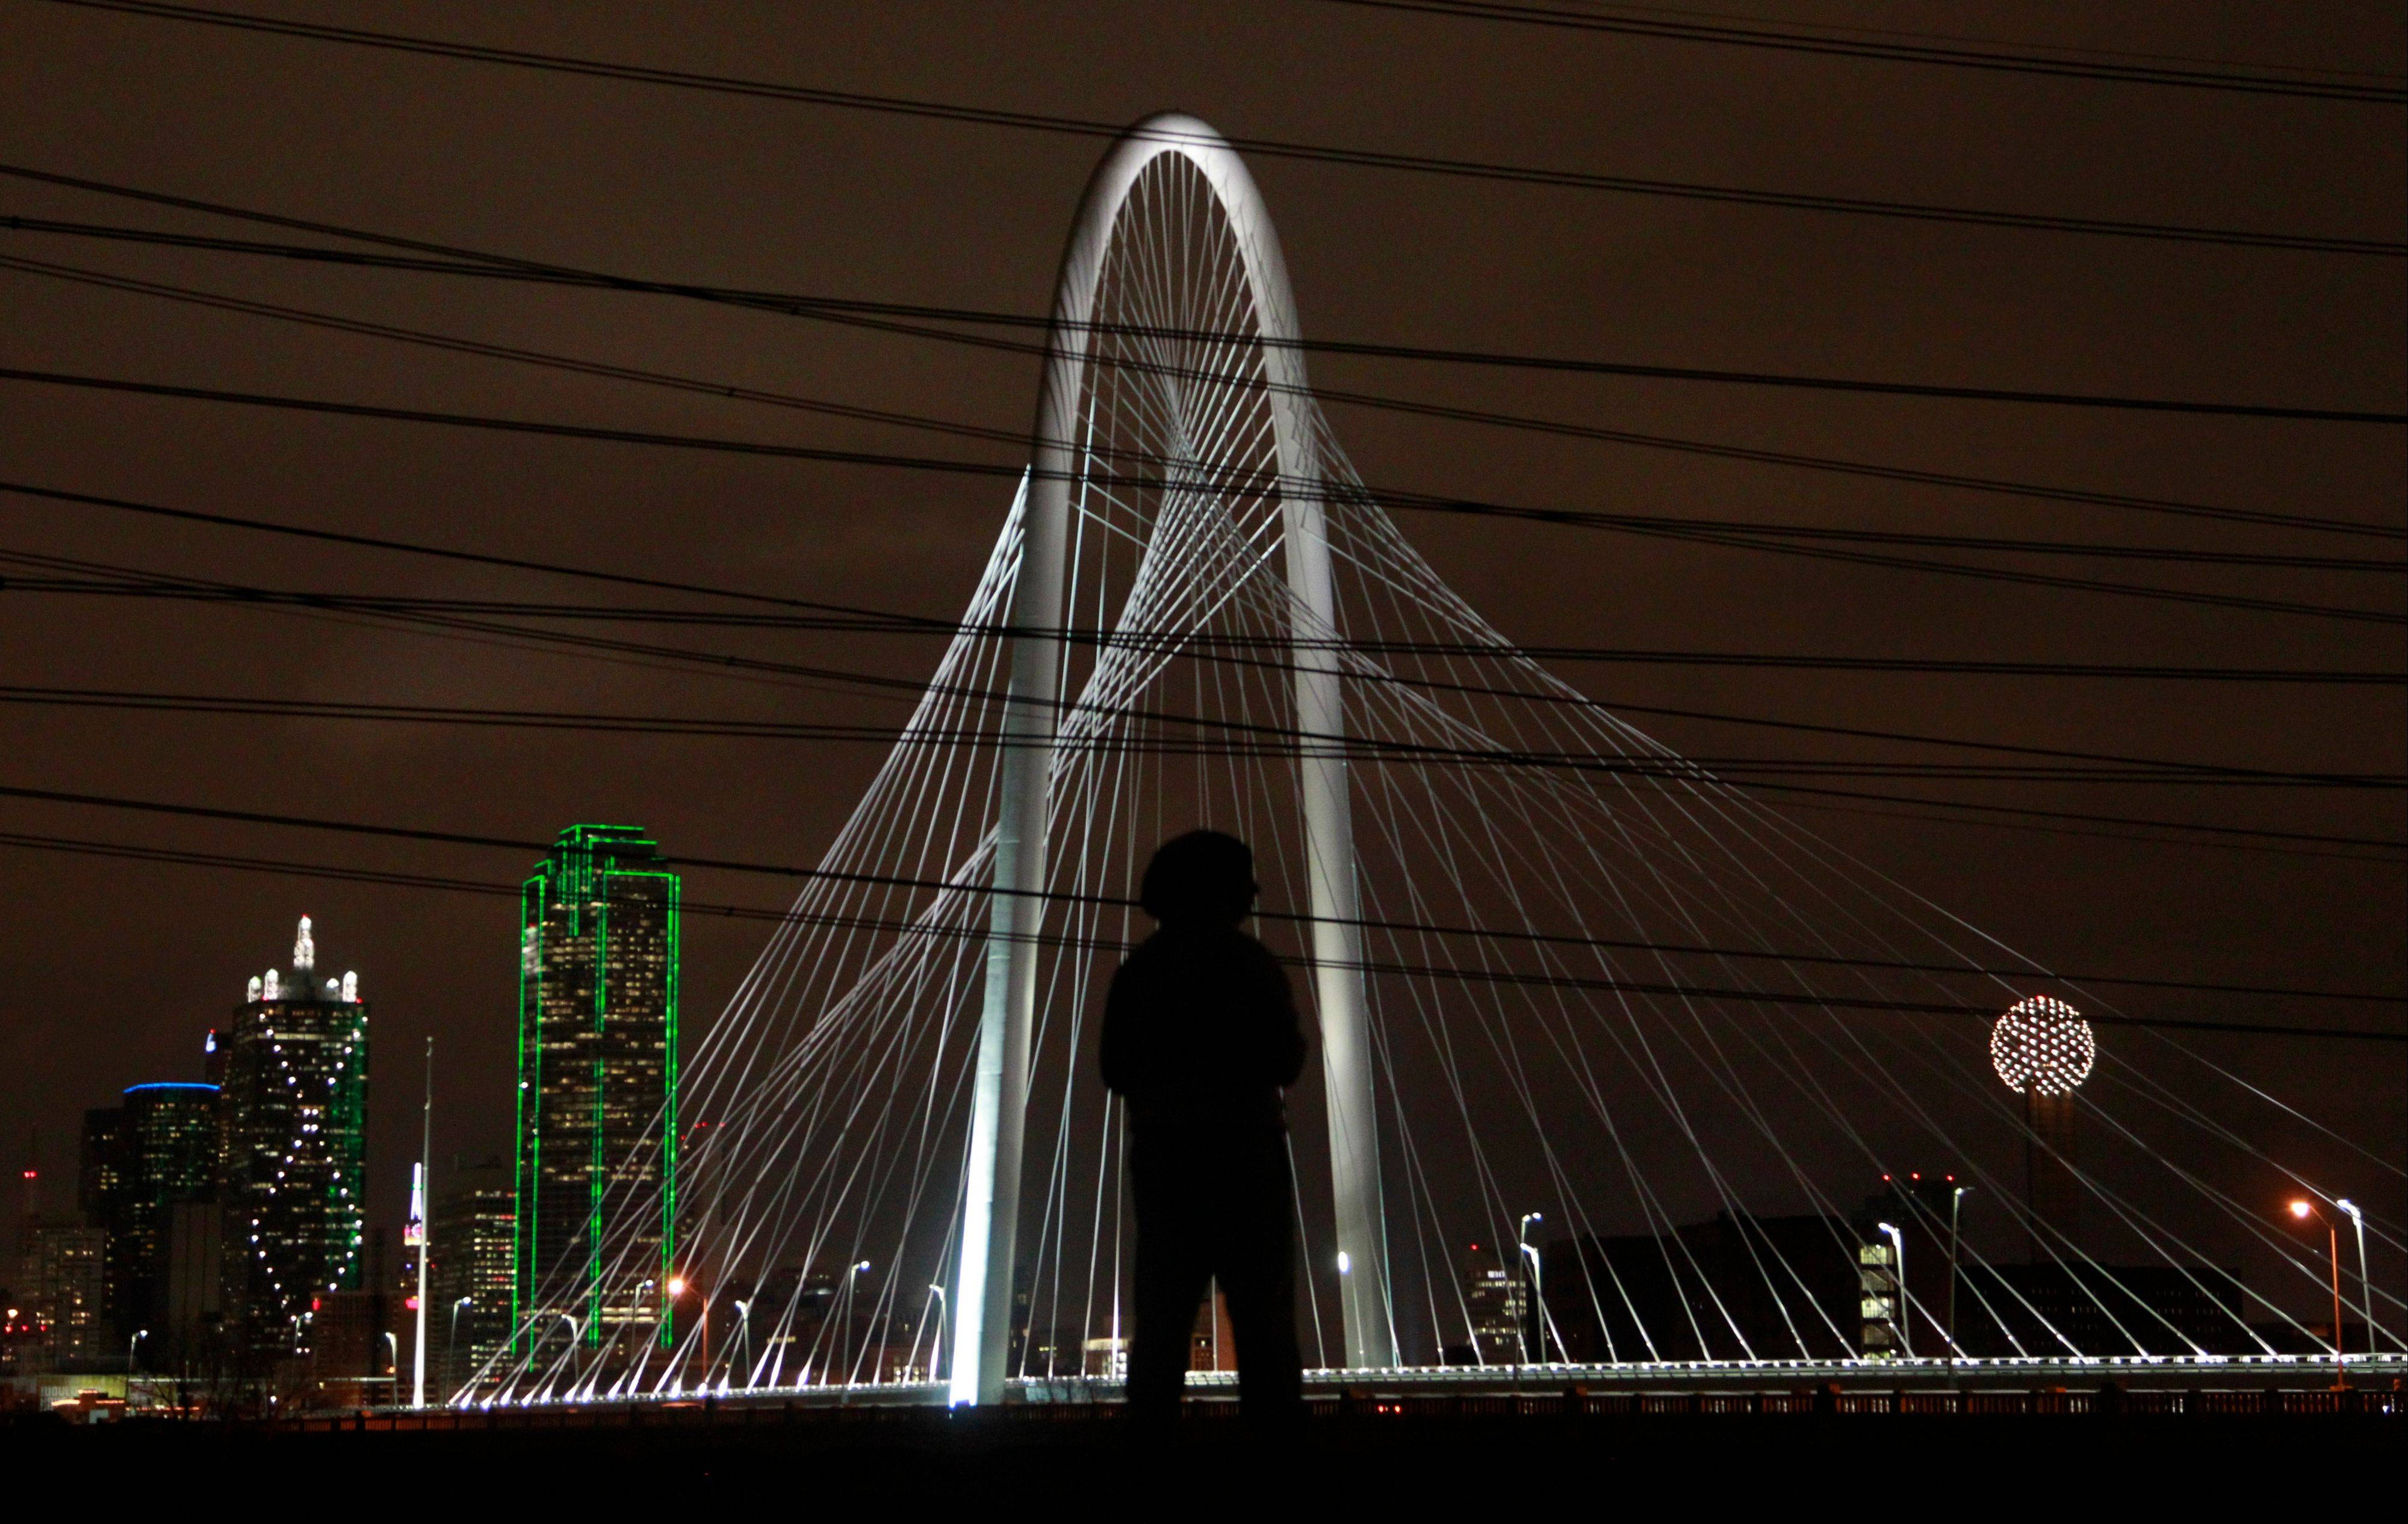 Marcos Carrillo takes a picture of they Margaret Hunt Hill Bridge, which opened in 2012, as it is lit up against the downtown Dallas skyline.